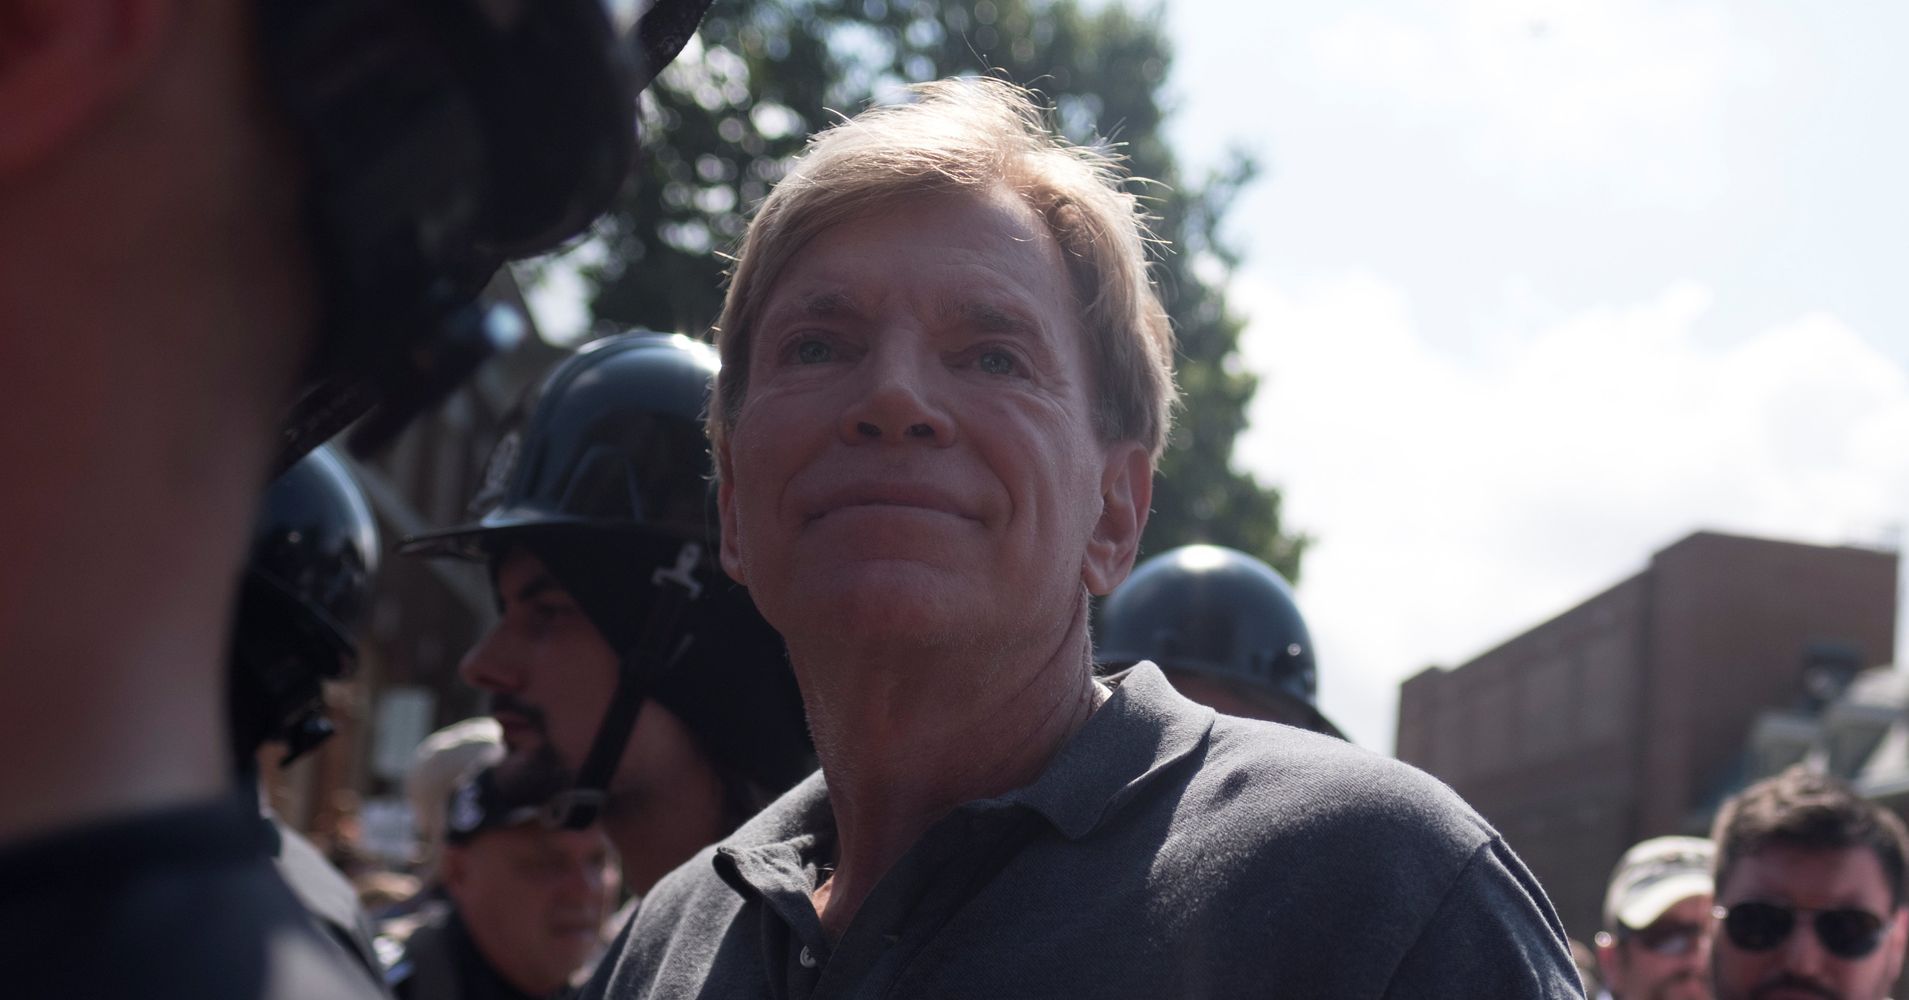 David Duke Has Meltdown After Trump Condemns White Supremacists In Charlottesville